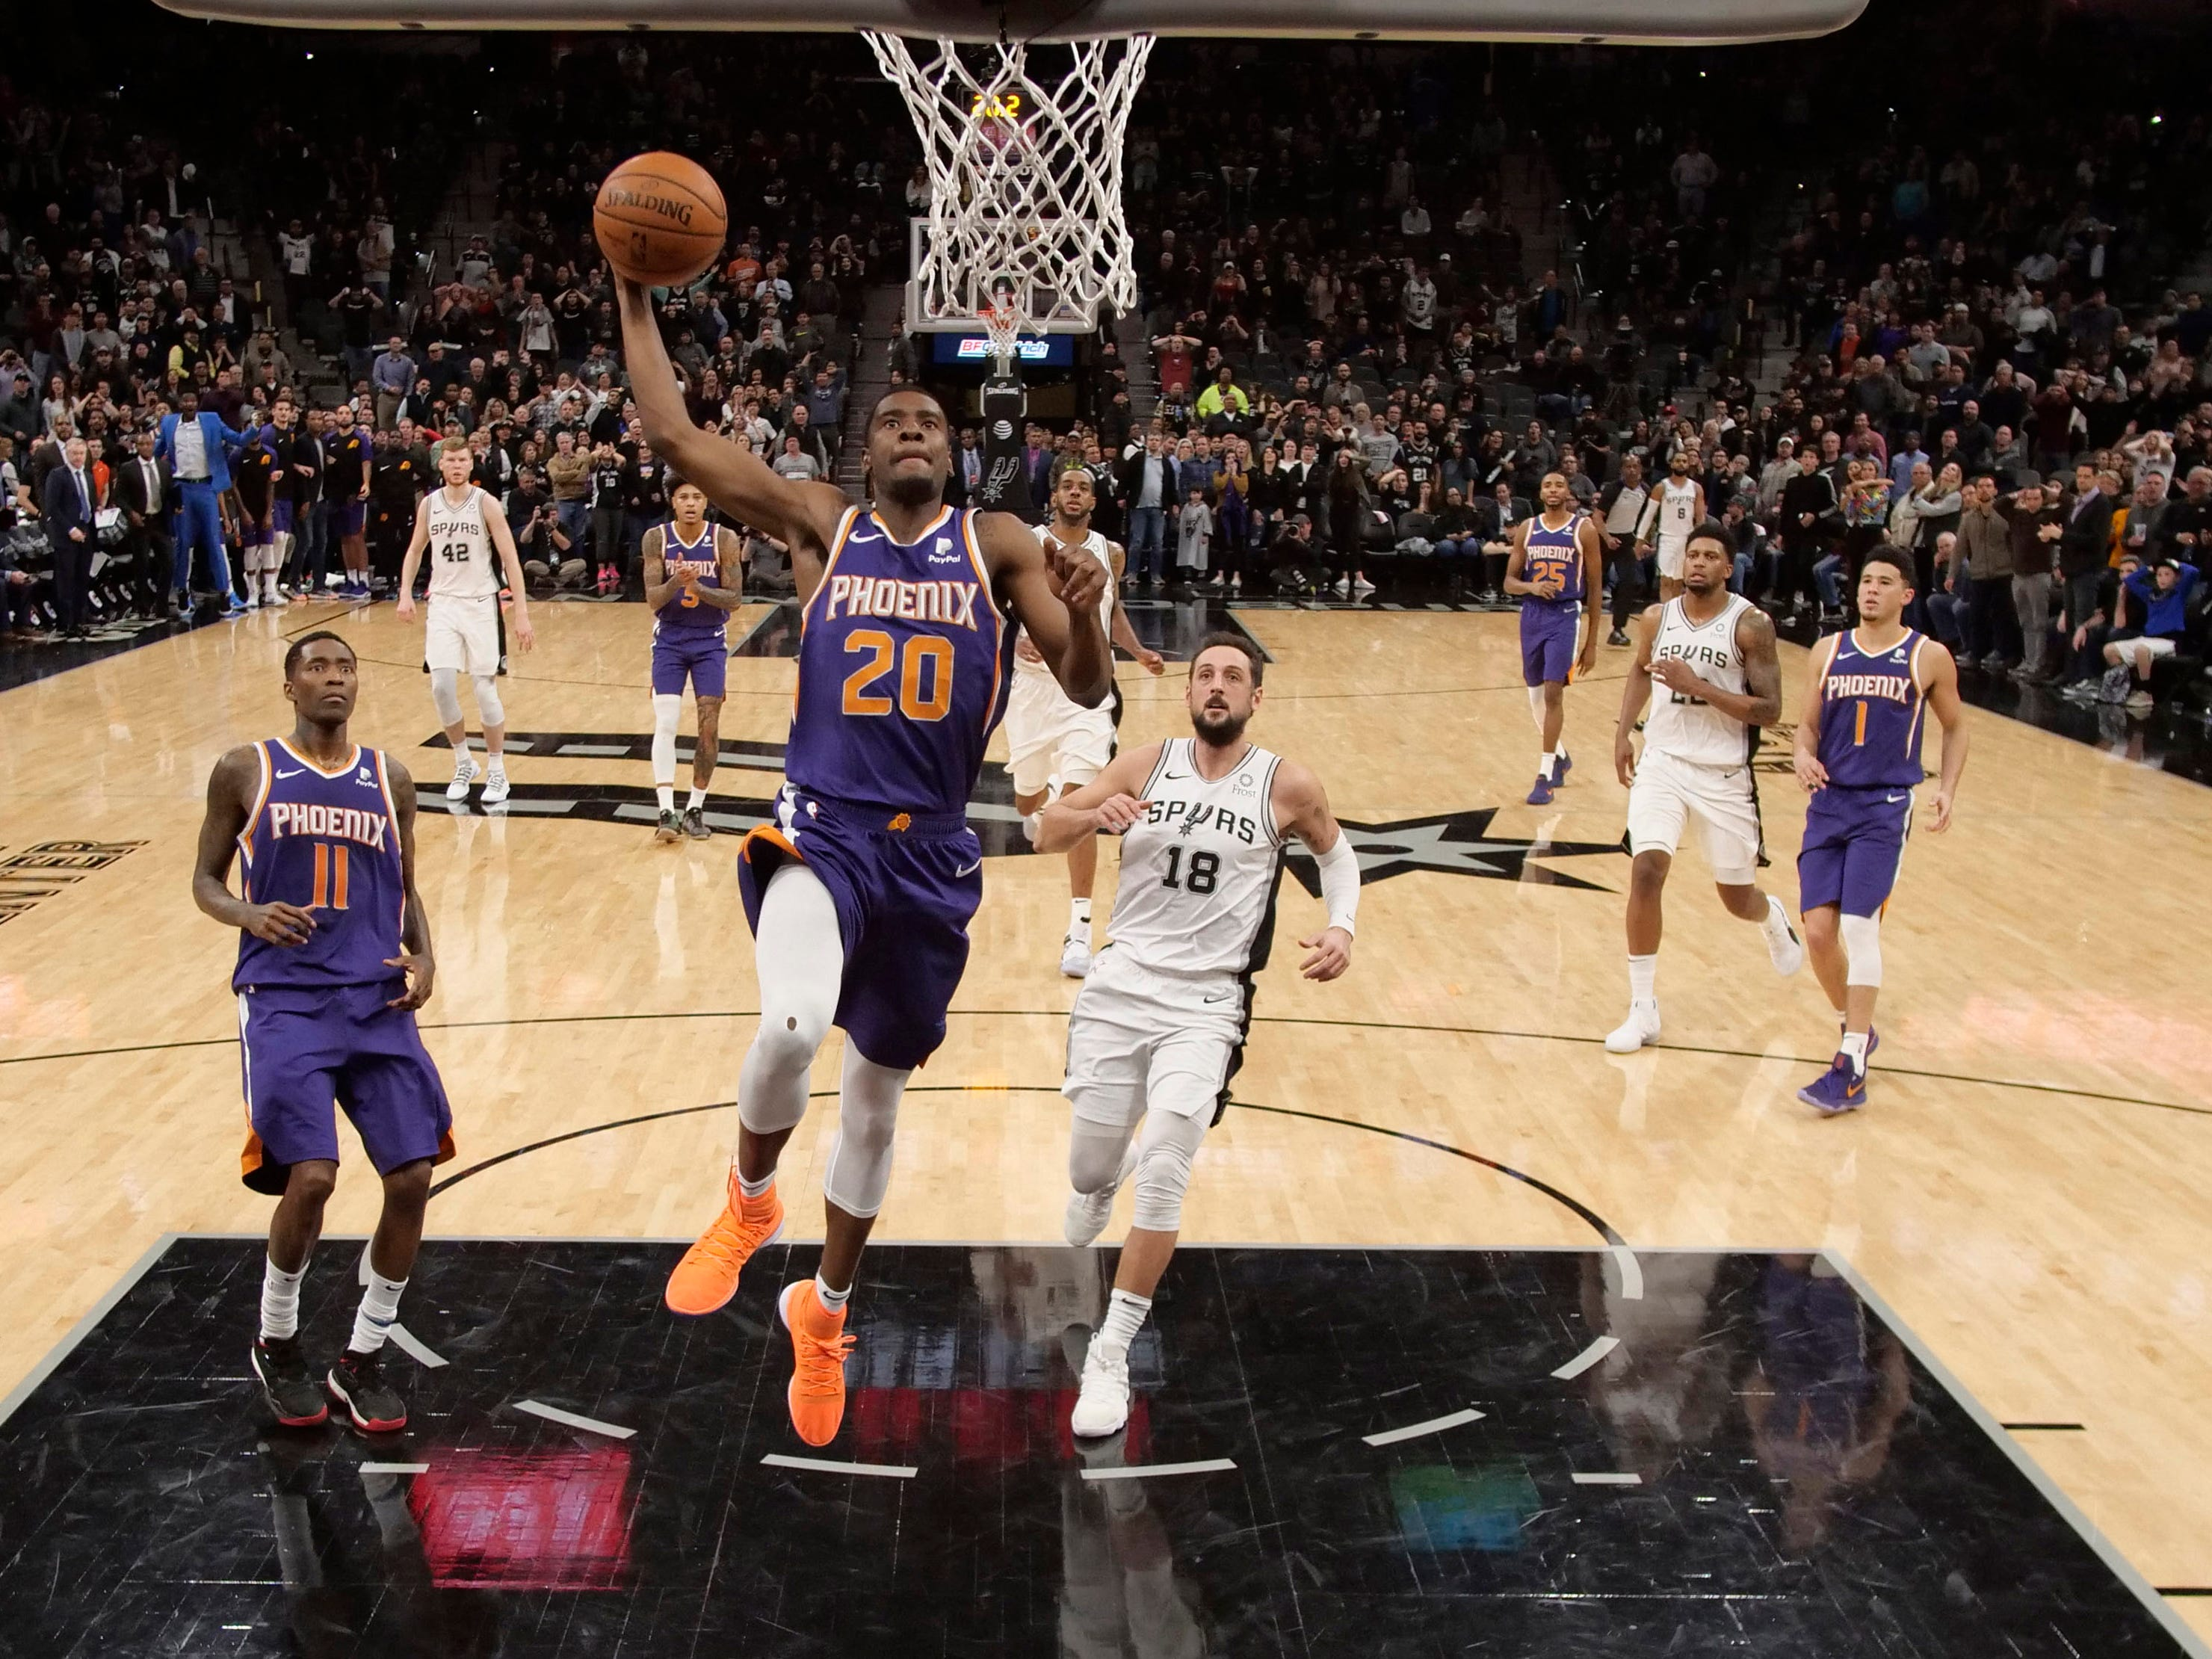 Jan 29, 2019: Phoenix Suns small forward Josh Jackson (20) dunks the ball during the second half against the San Antonio Spurs at AT&T Center.